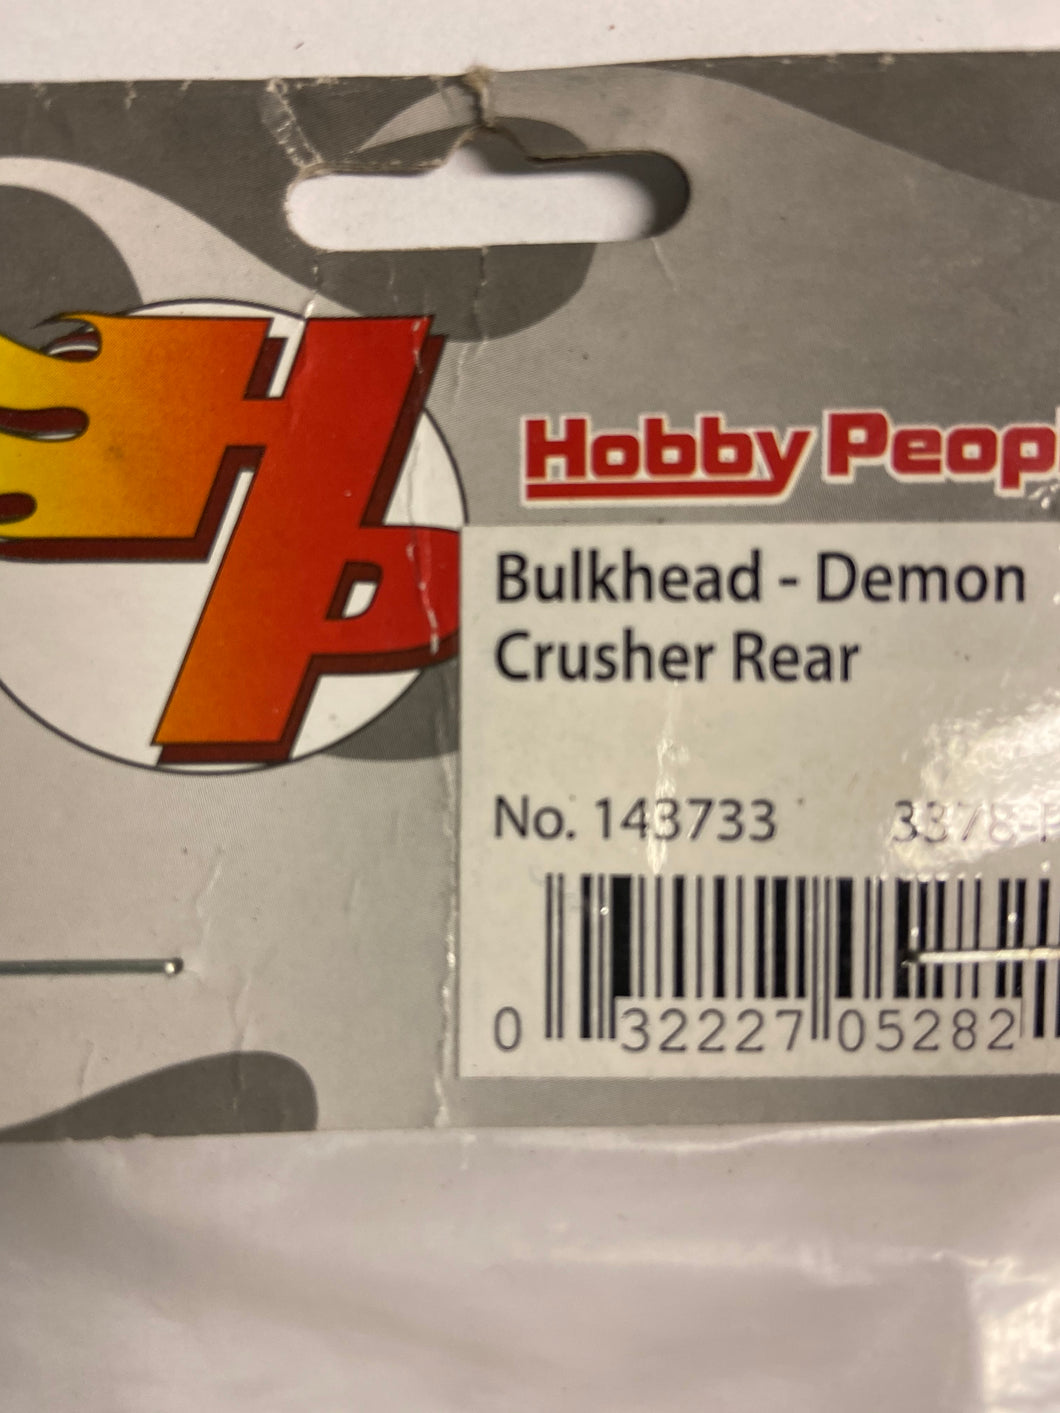 Hobby People  Bulkhead - Demon crusher rear - Hobby Shop